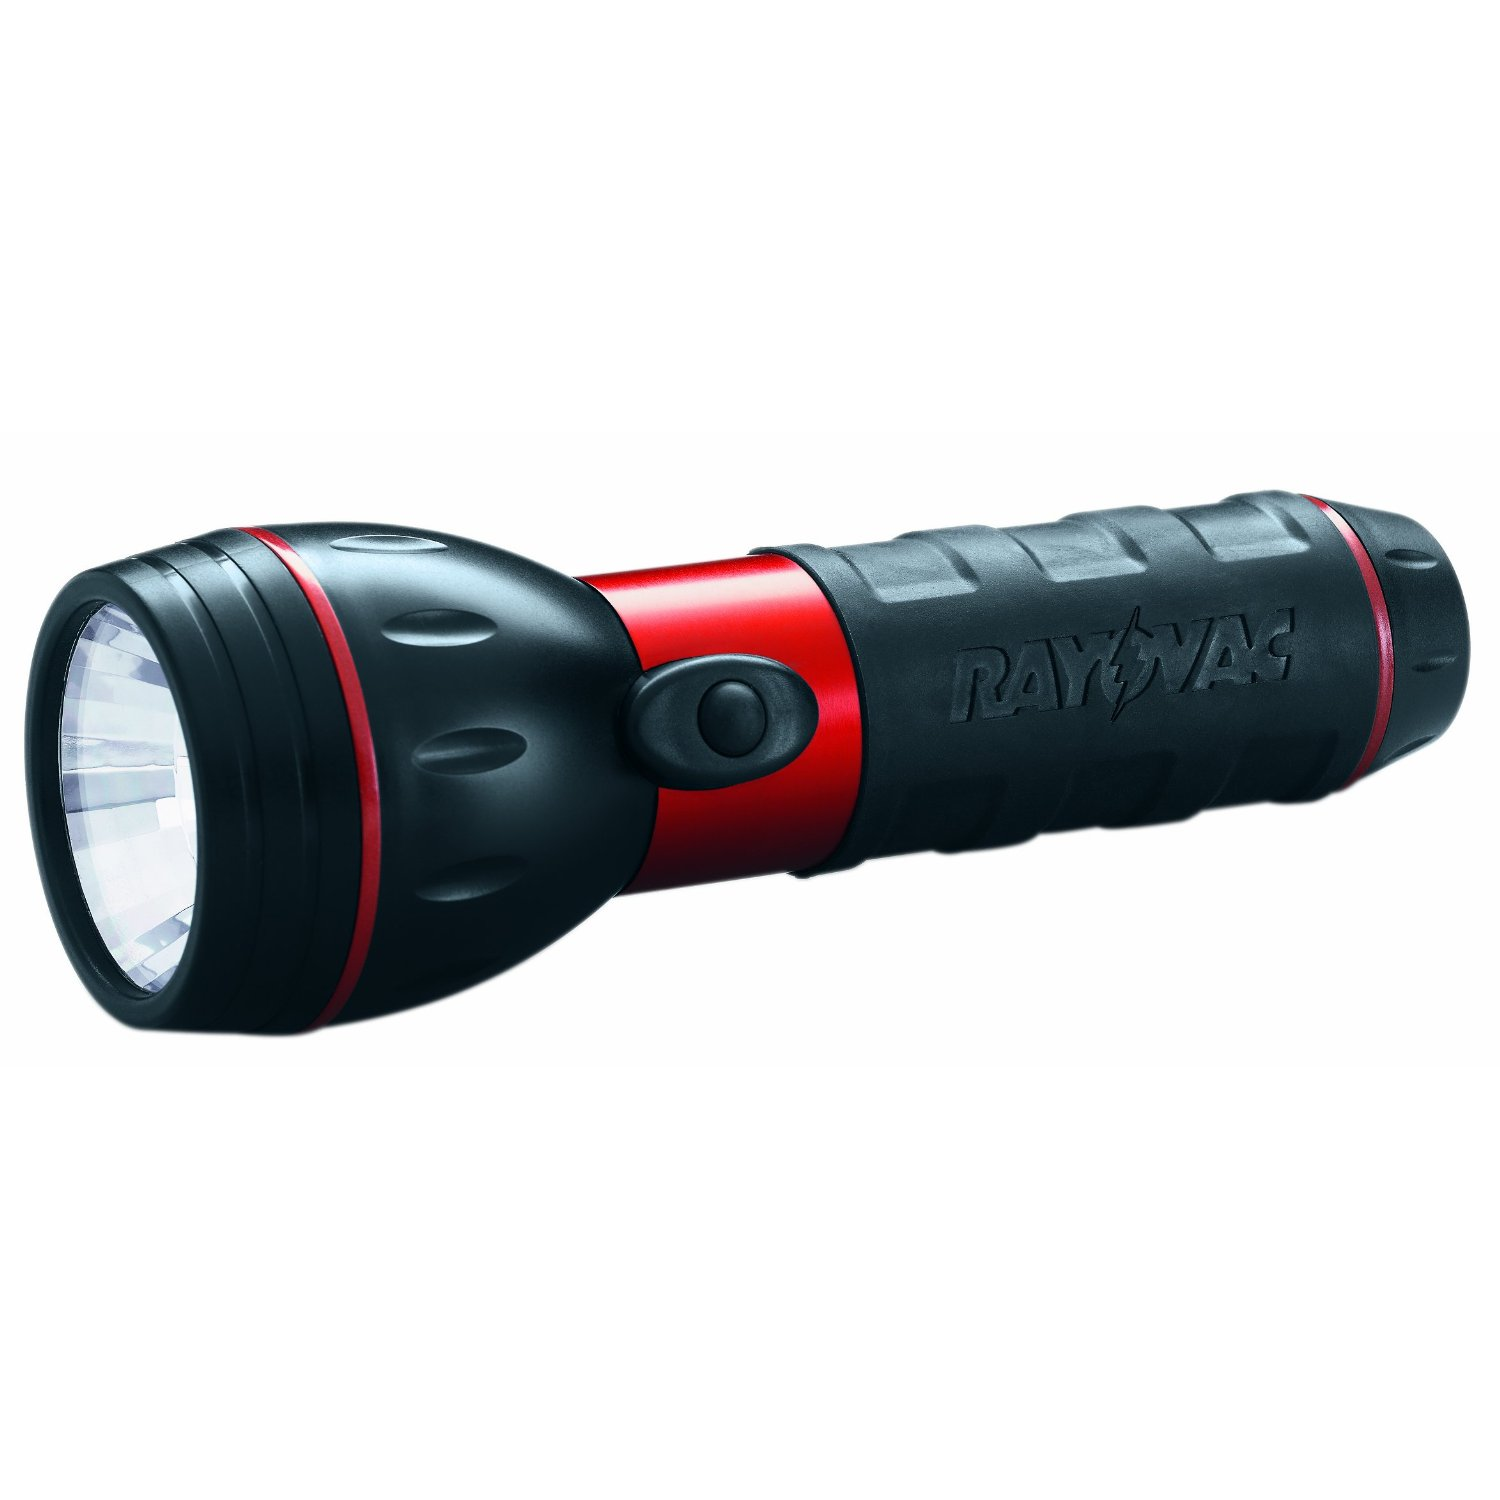 Rayovac 2D-B RB Economy Flashlight, Red and Black [Tools & Home Improvement]